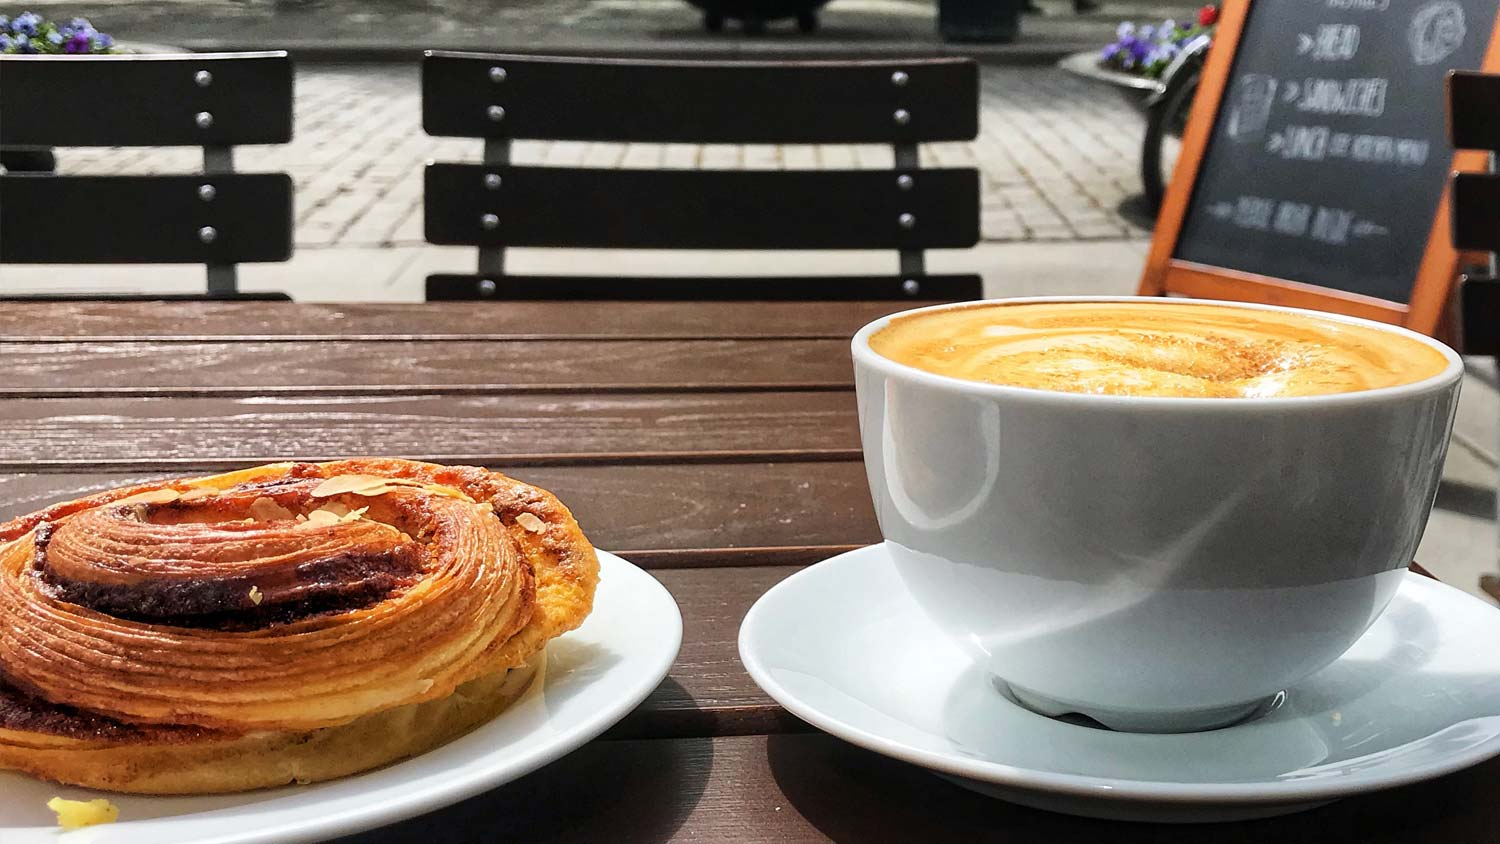 Pastry and coffee on table